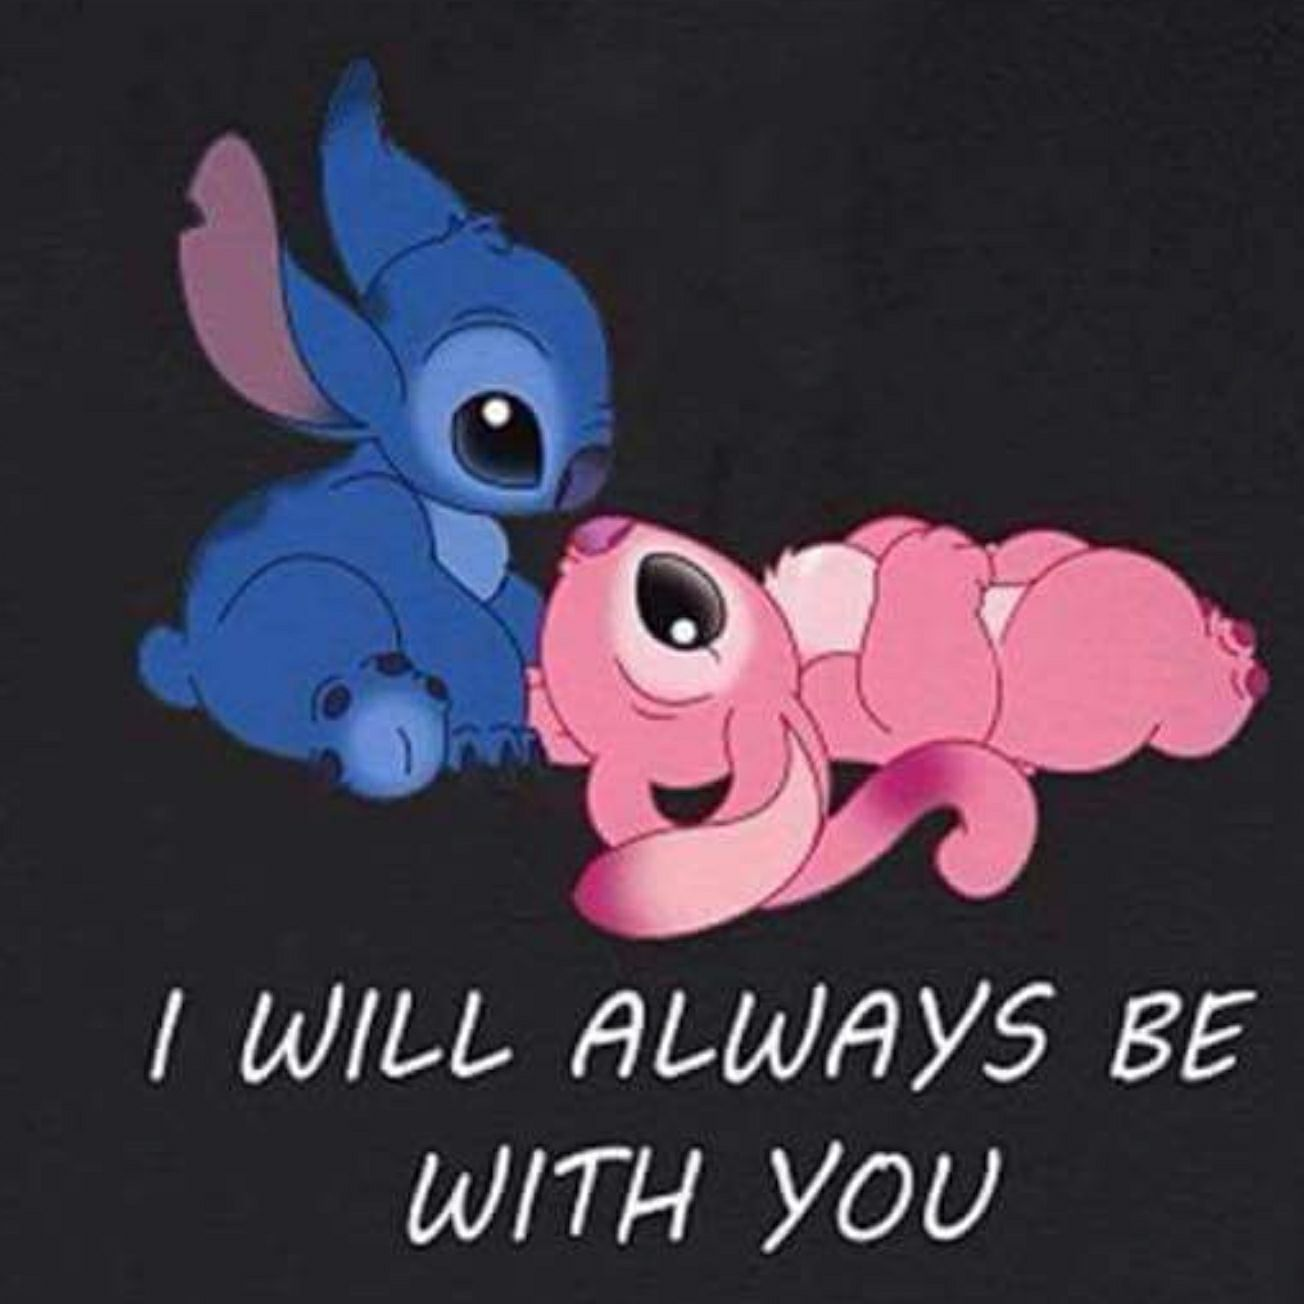 I will always be with you